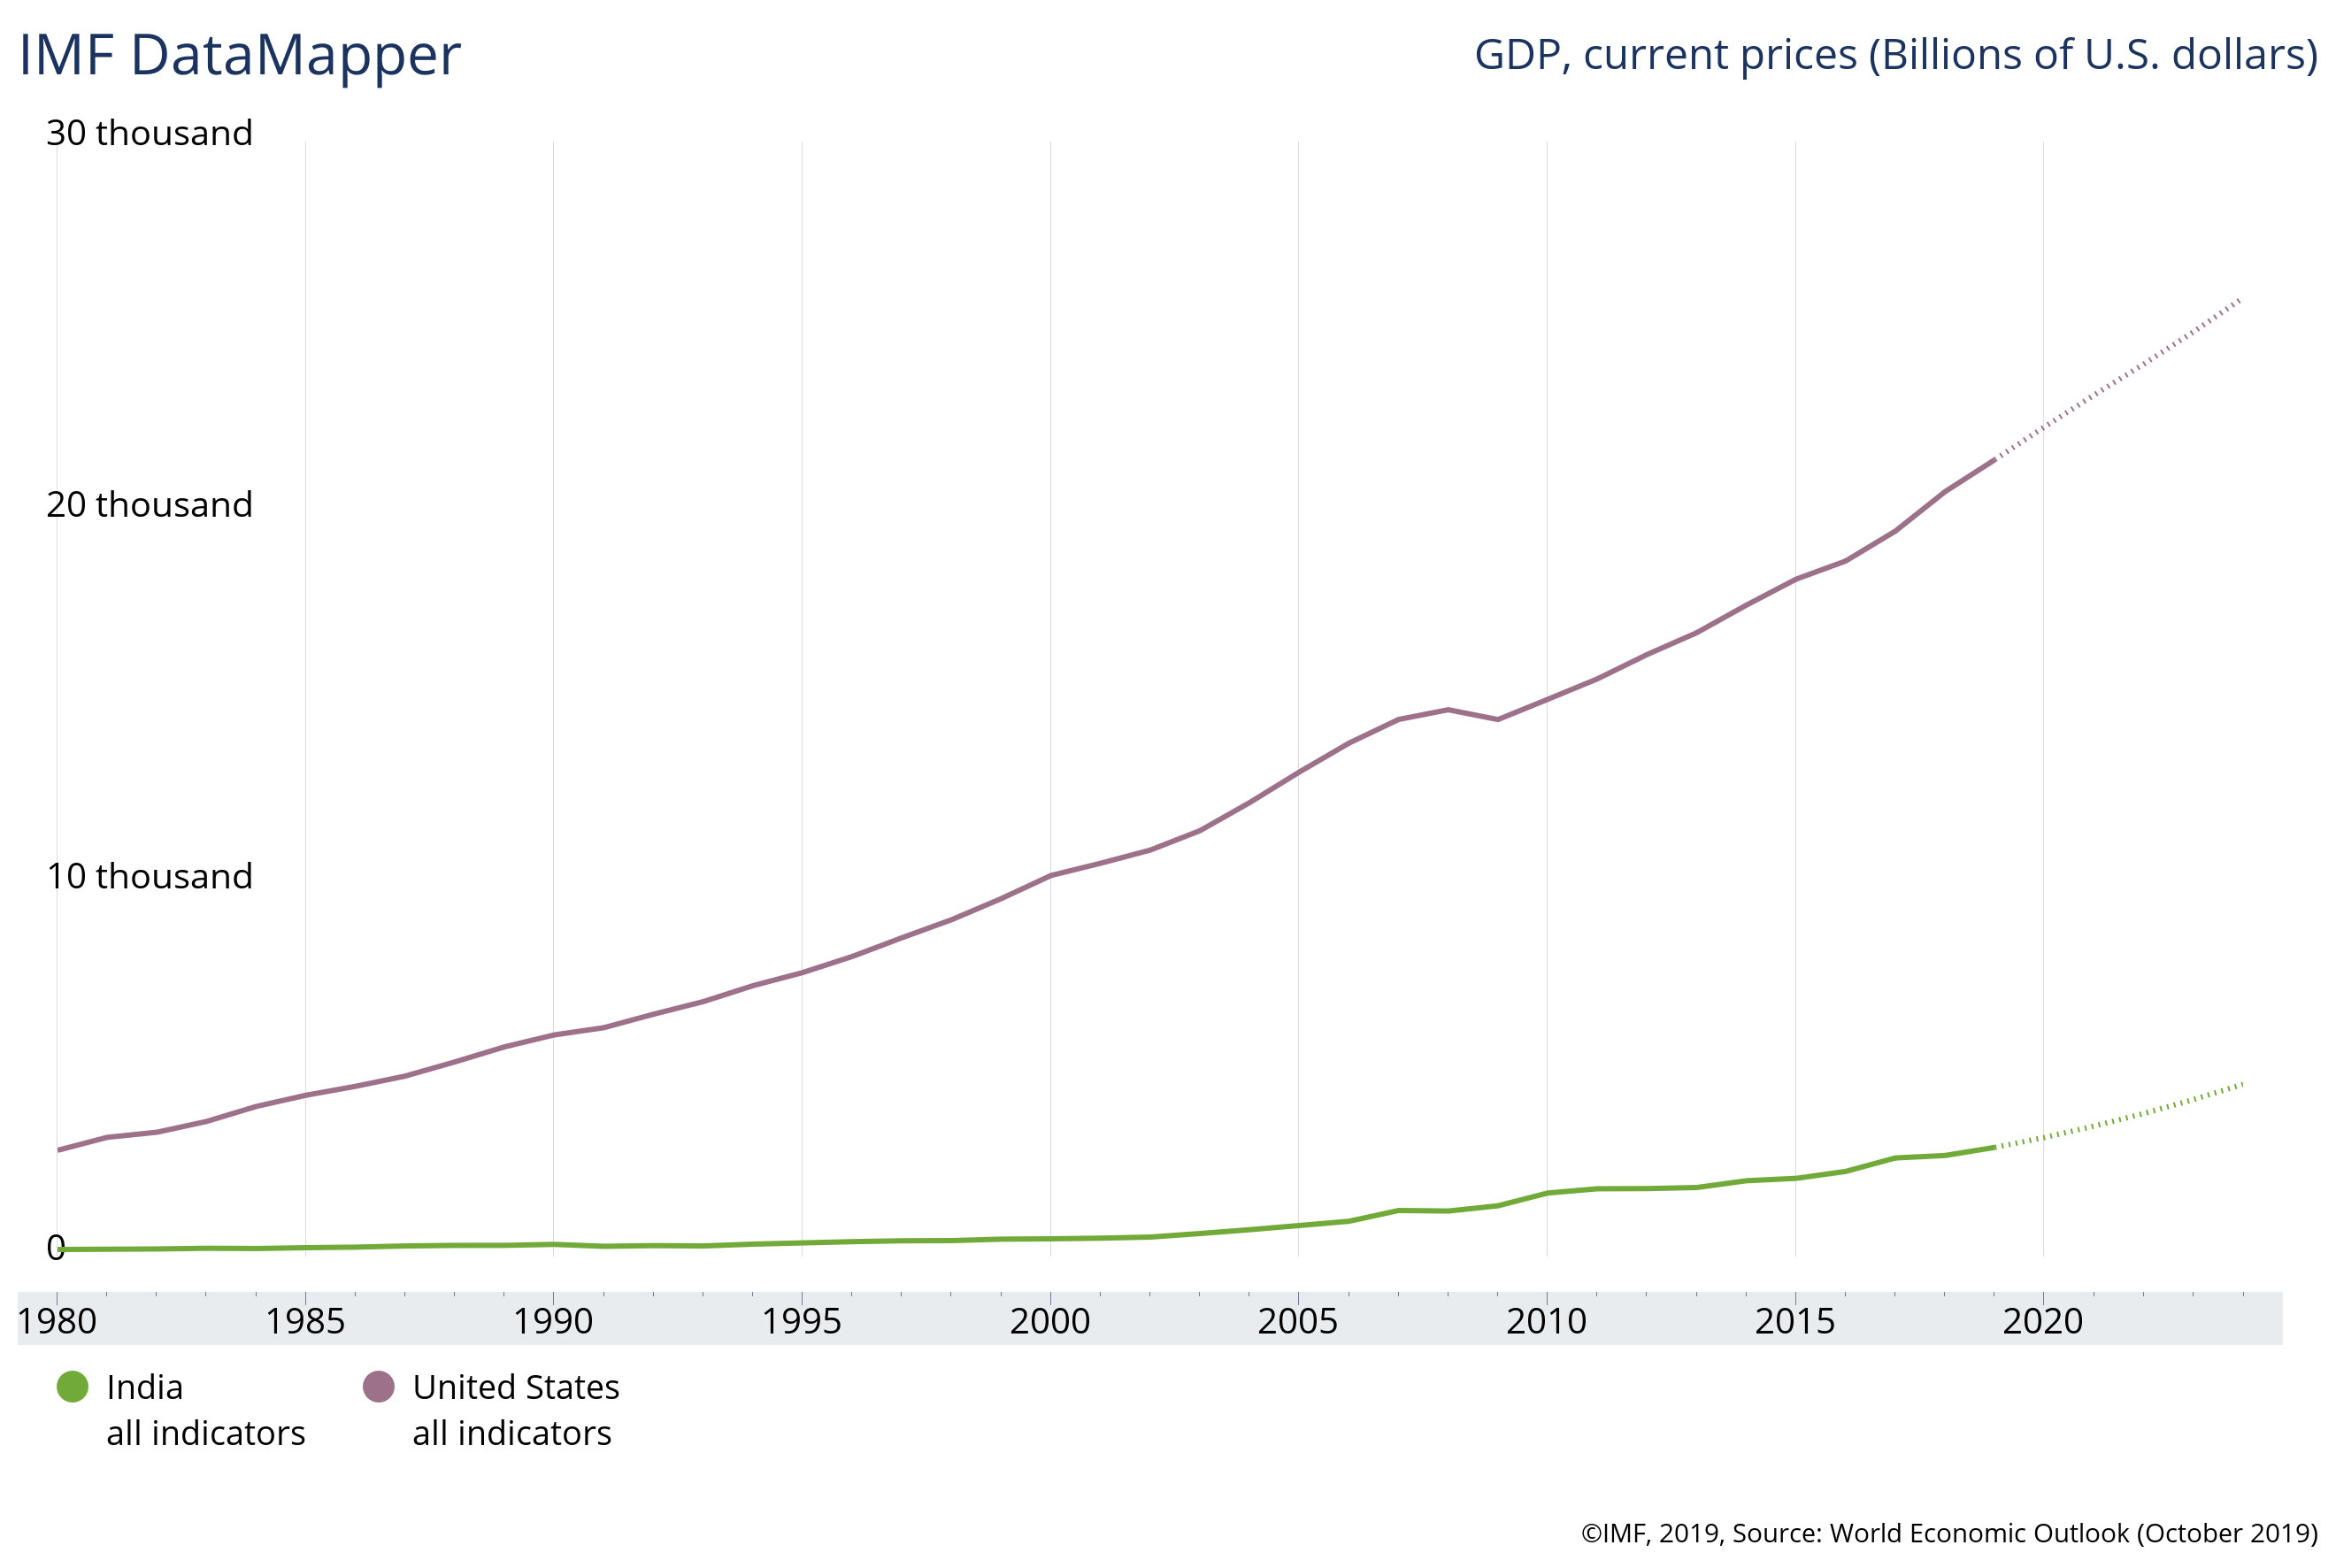 gdp India US